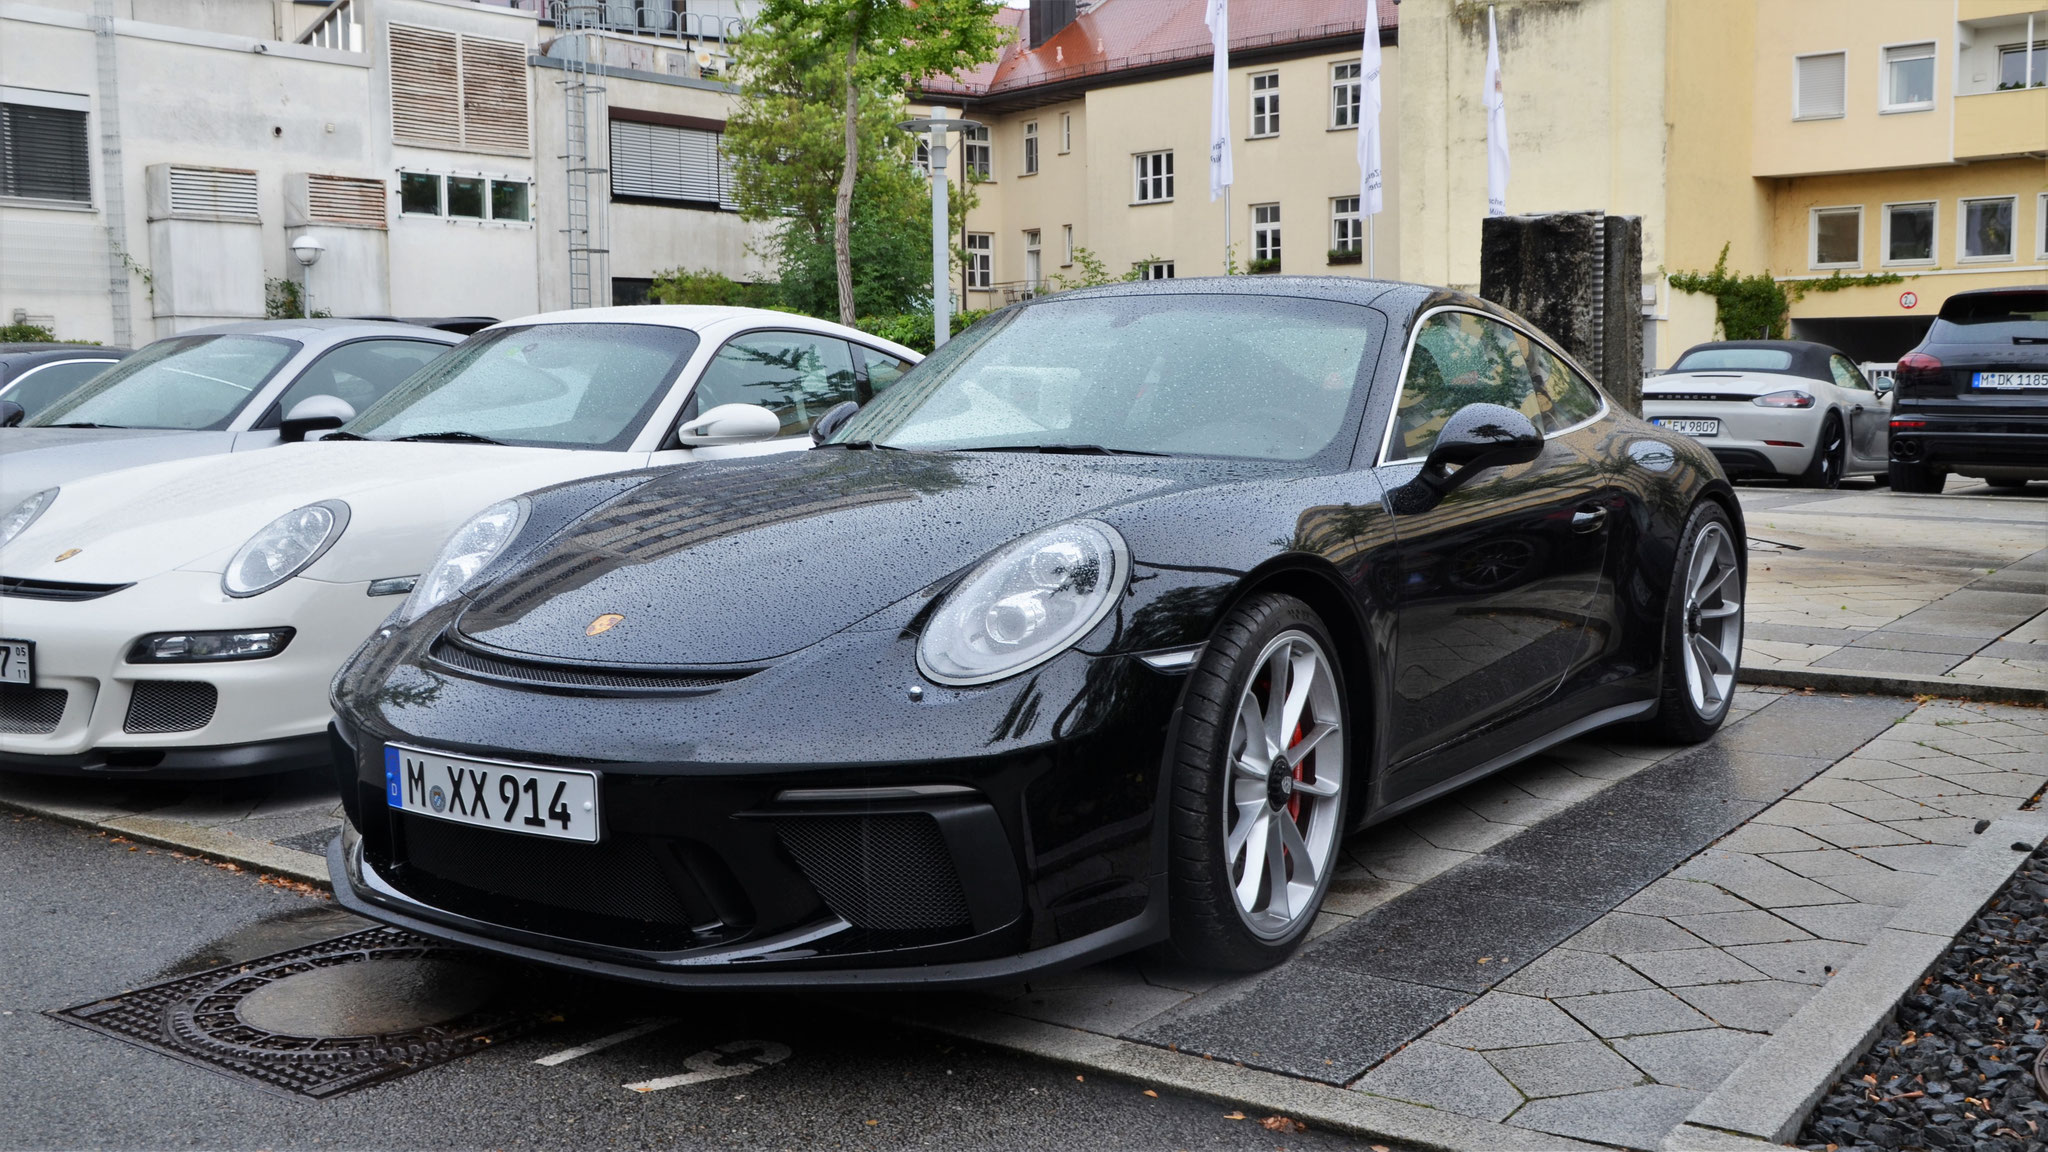 Porsche 991 GT3 Touring Package - M-XX-914